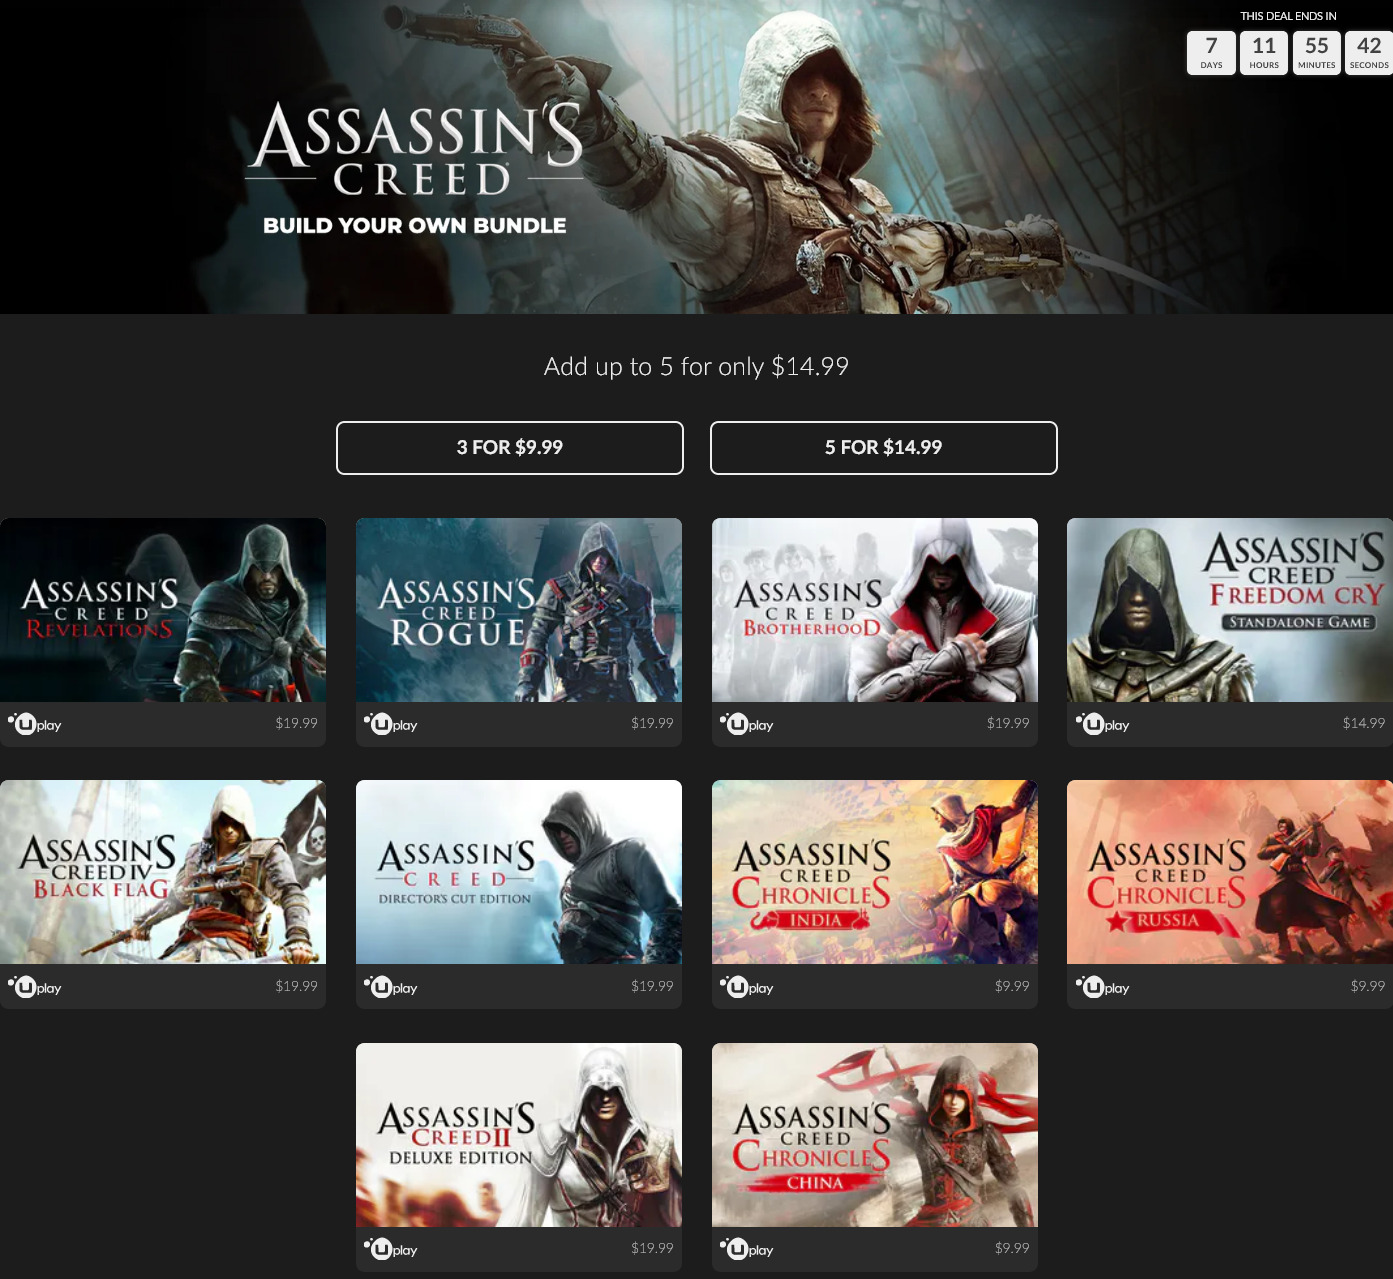 Screenshot_2020-07-20 Fanatical Assassin's Creed - Build your own Bundle.jpg